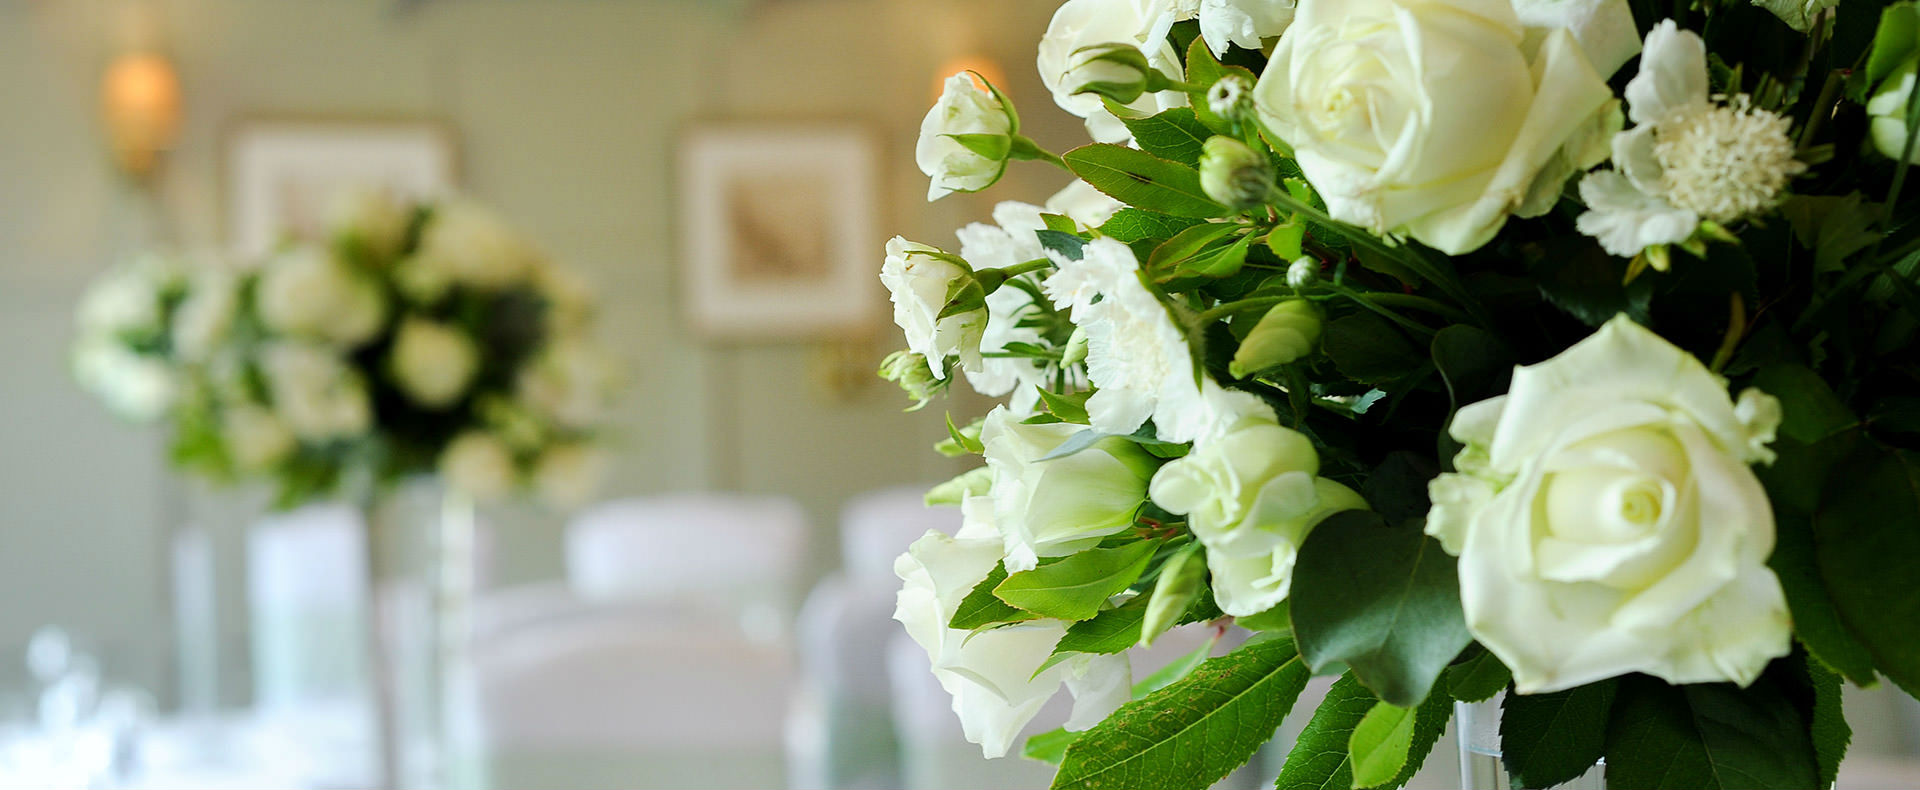 Flower Arranging Workshop | Montagu Arms Hotel